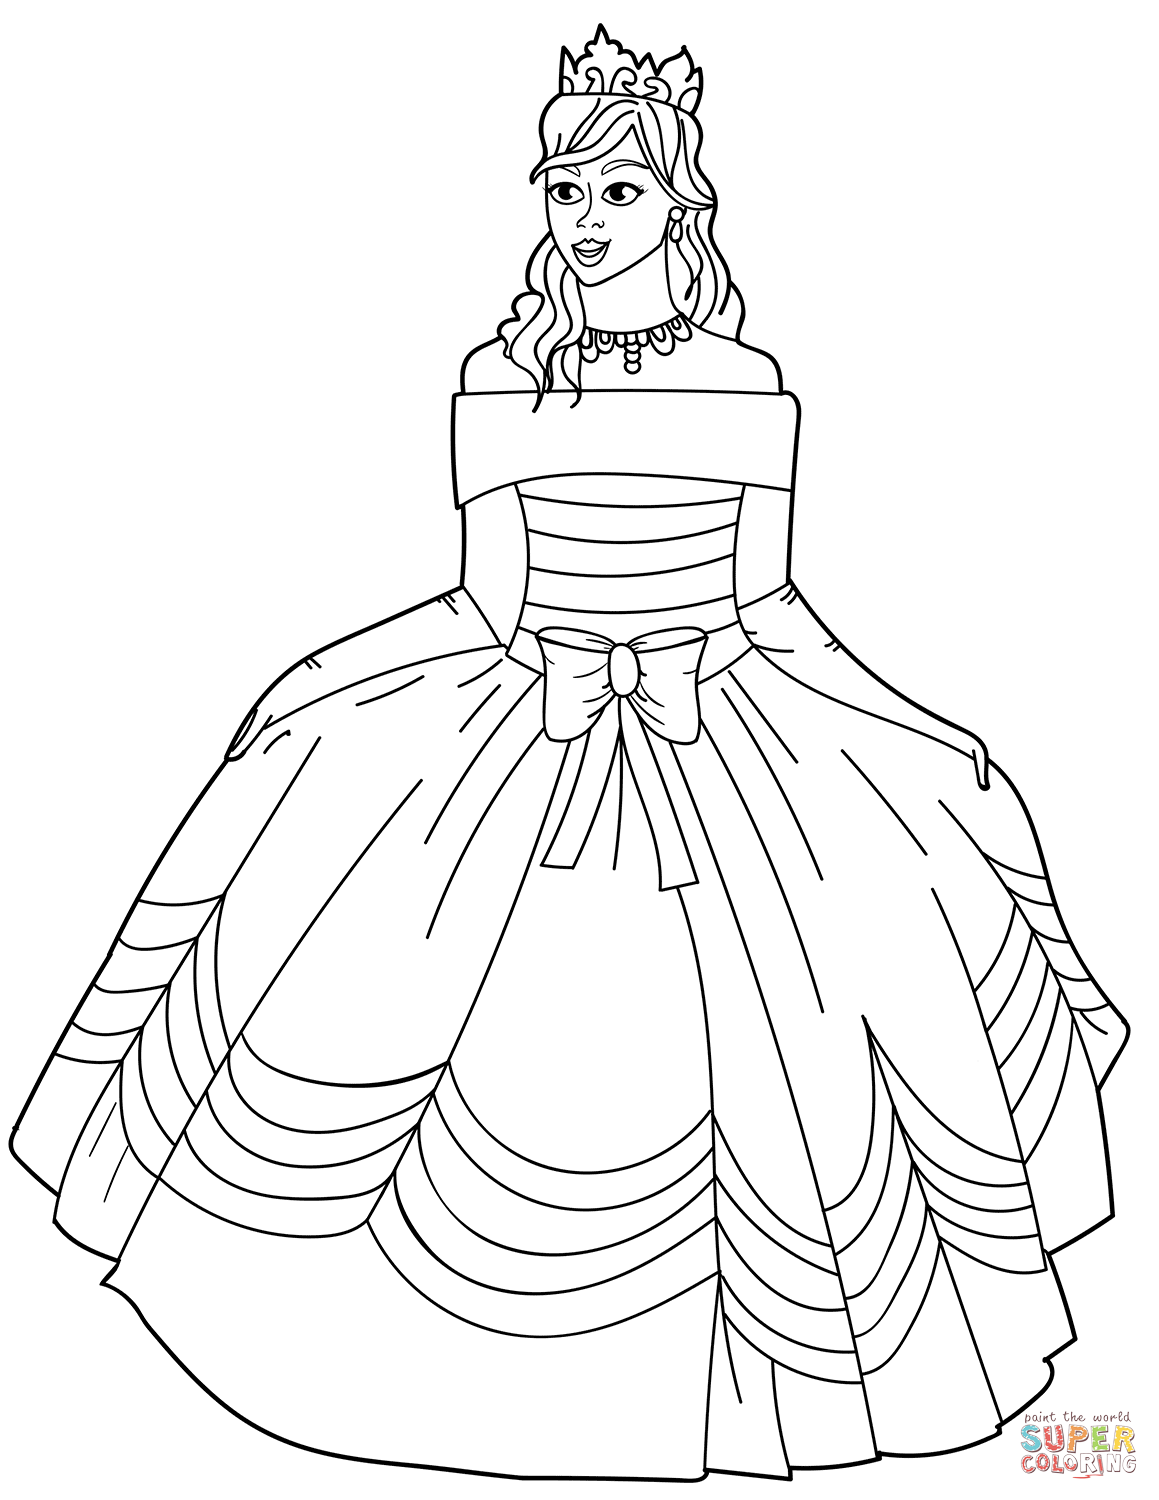 dress for coloring princess in ball gown off the shoulder dress coloring page dress coloring for